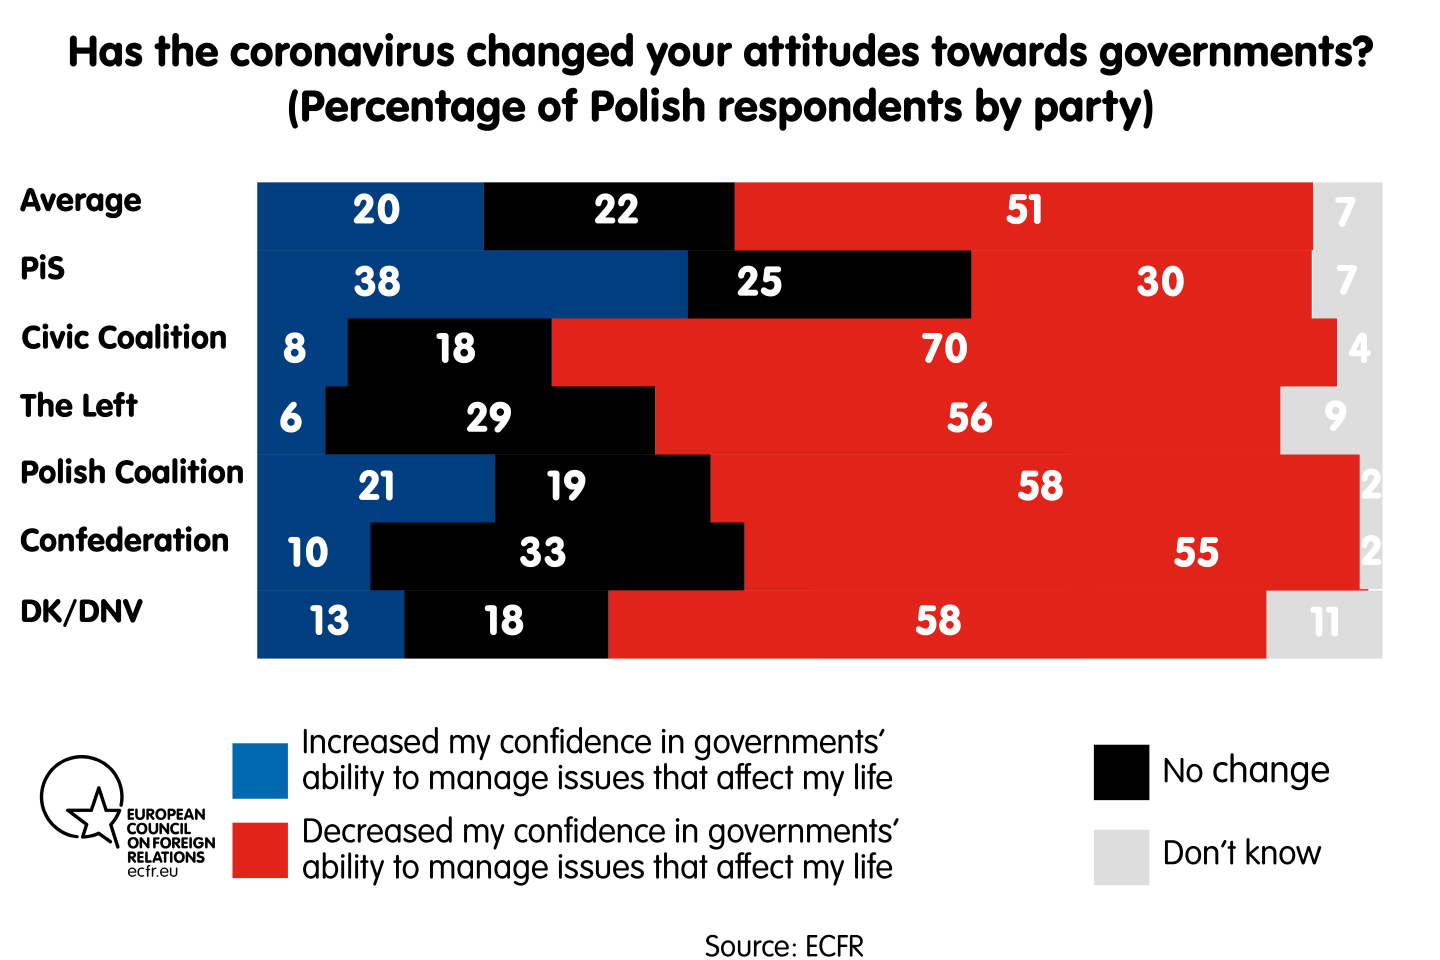 Has the coronavirus changed your attitudes towards governments? By party